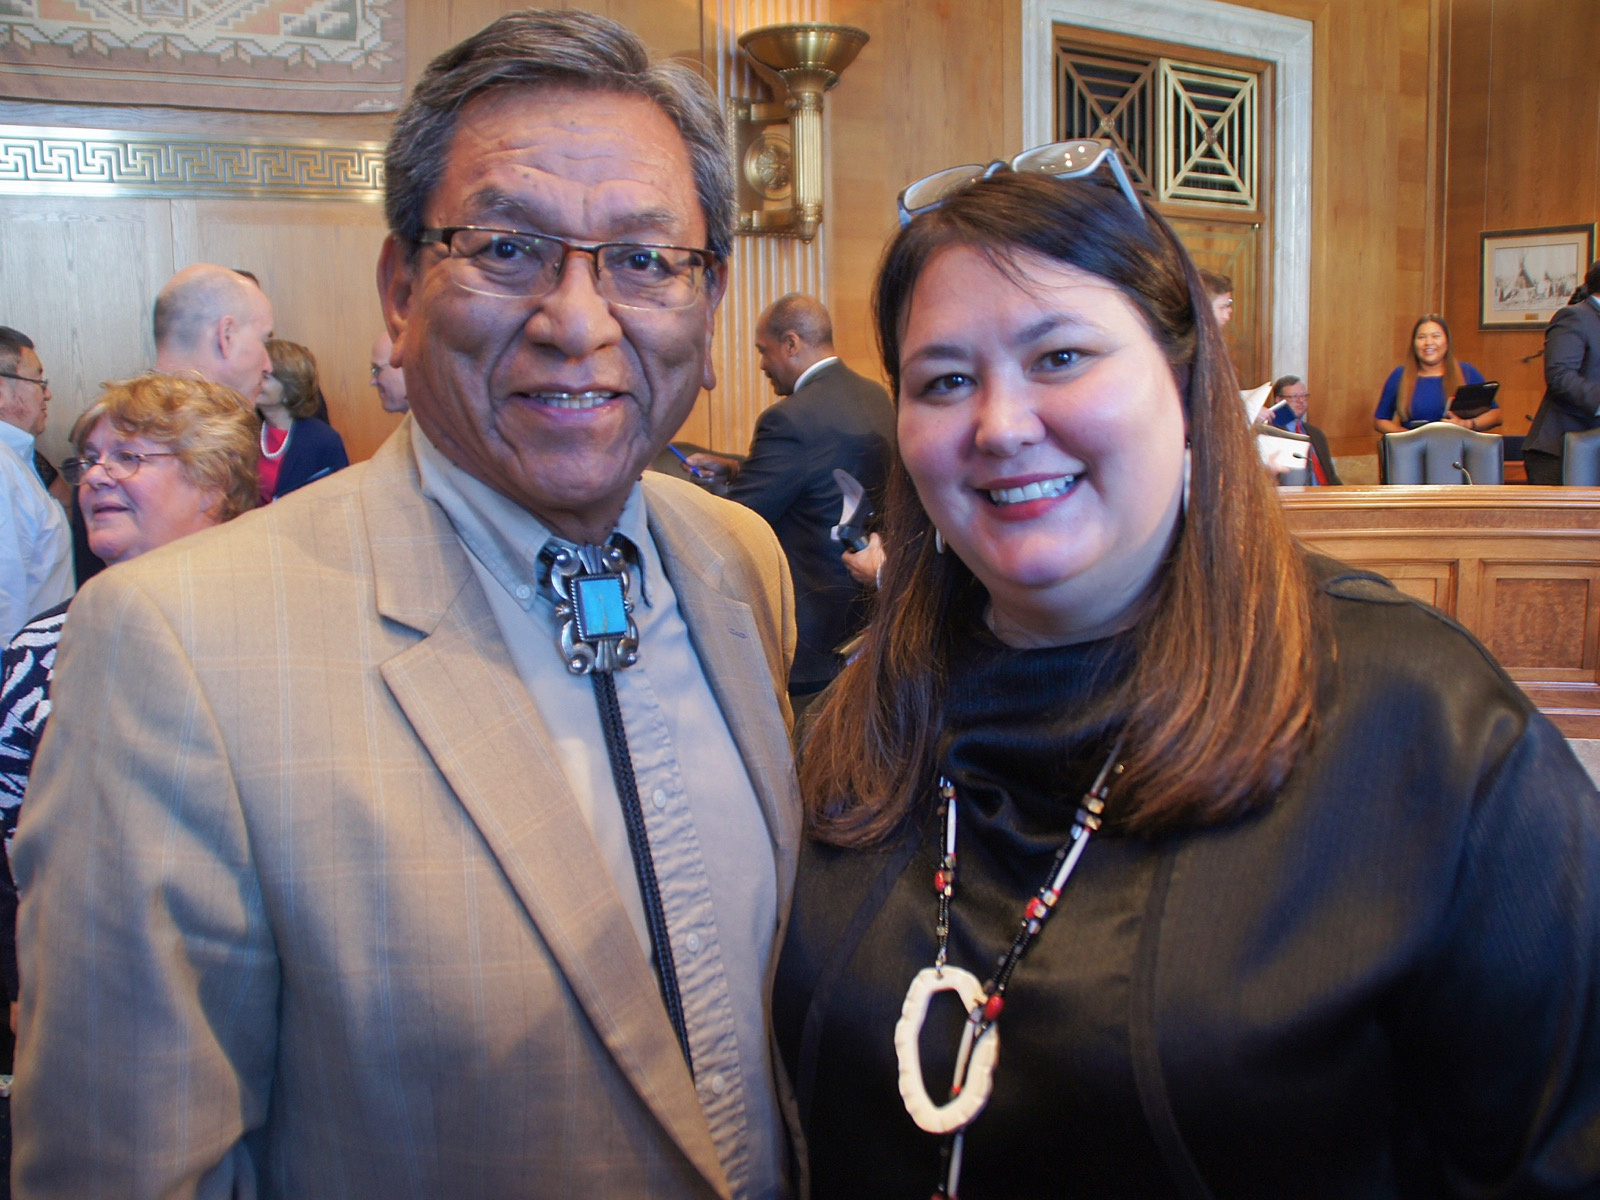 Tribes continue to rely on key lawmakers for help with funding